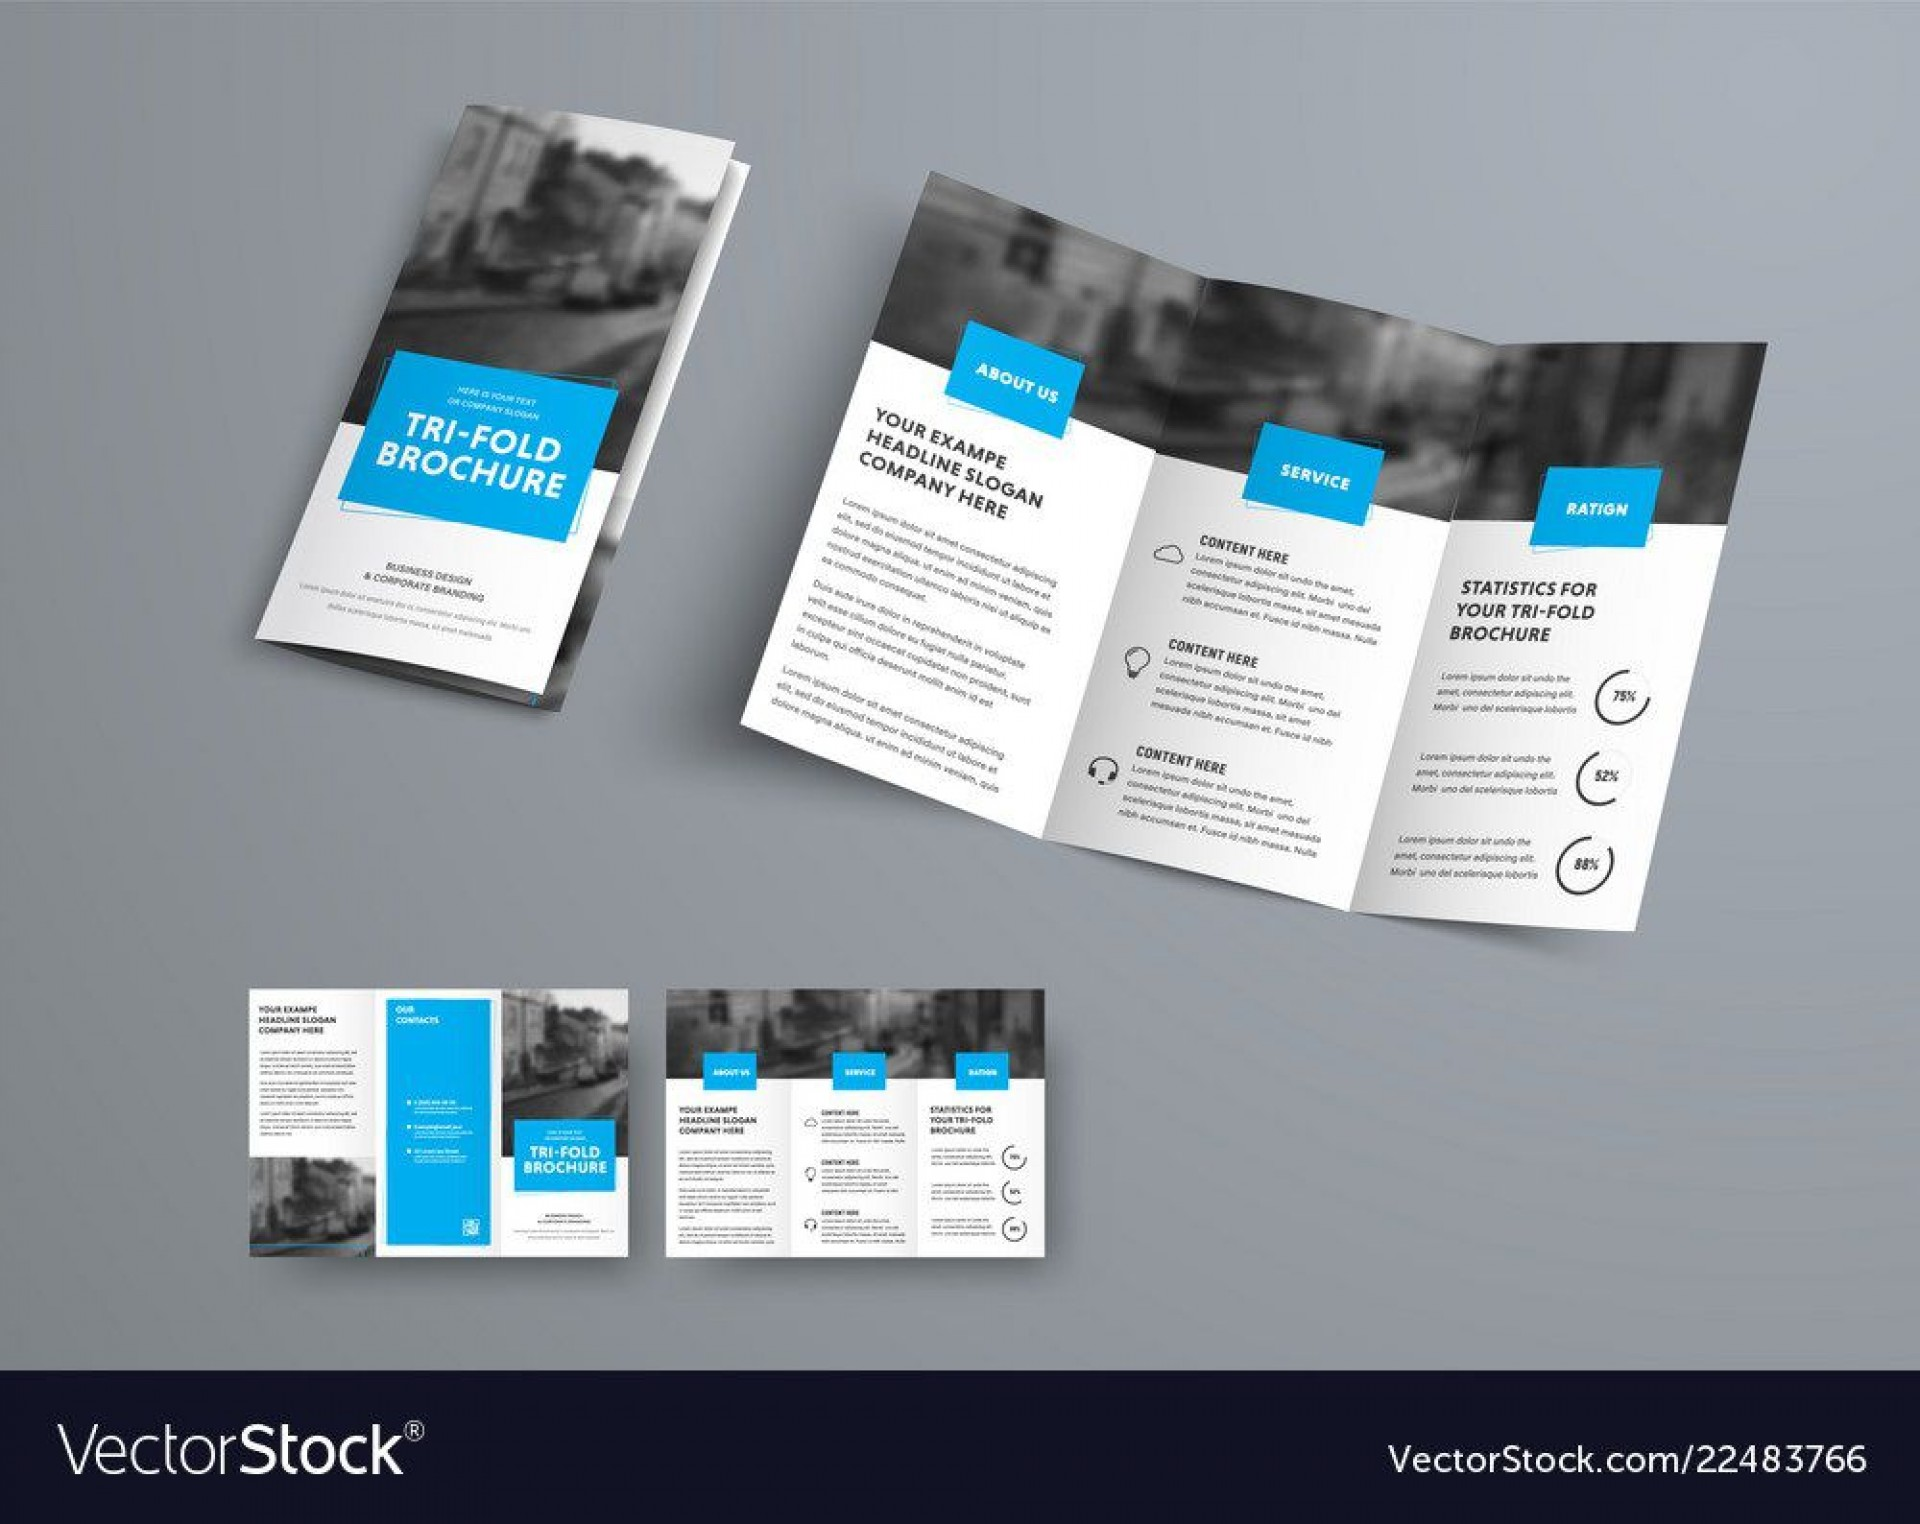 009 Best 3 Fold Brochure Template Sample  Templates For Free1920